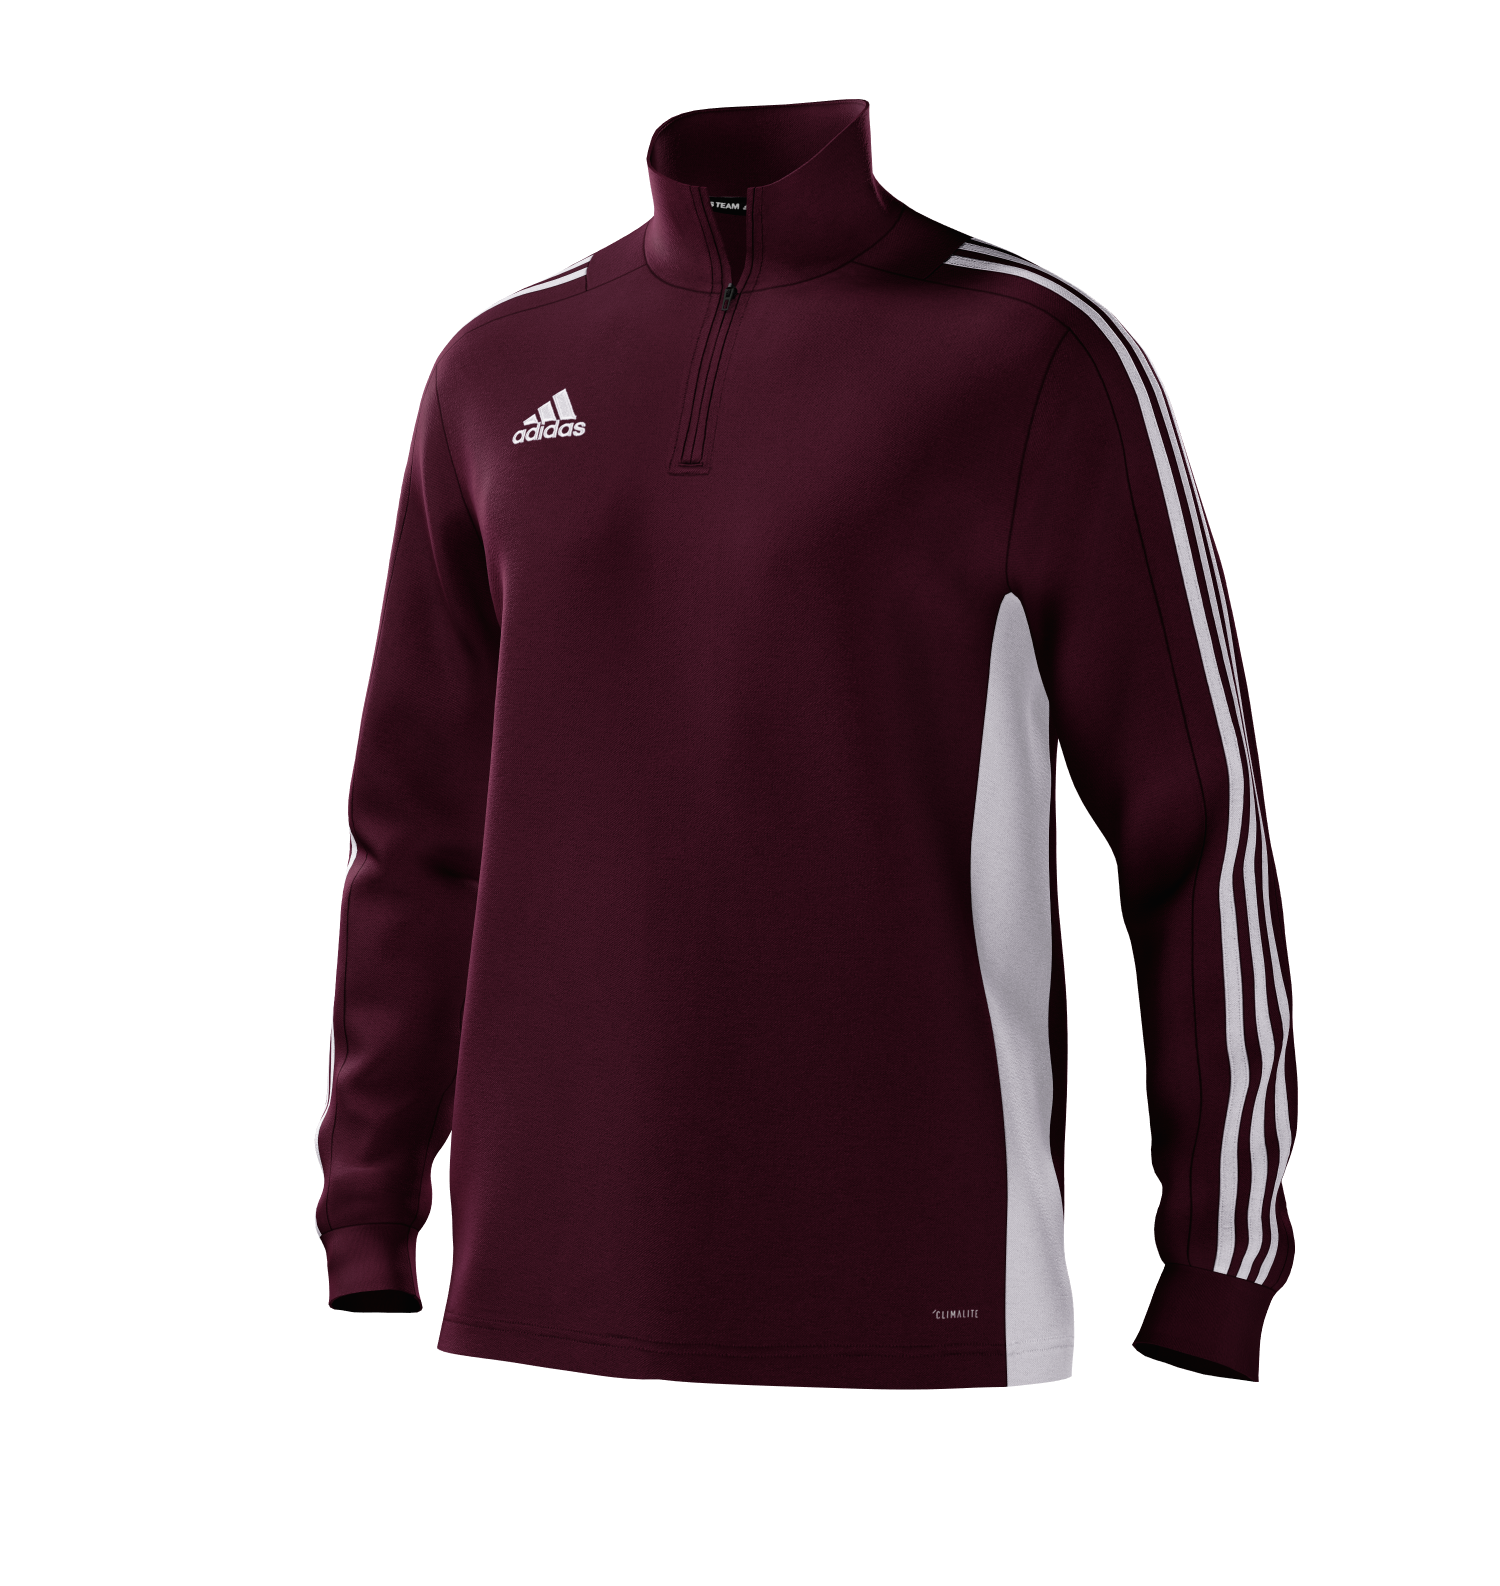 Ashby Hastings CC Adidas Maroon Training Top